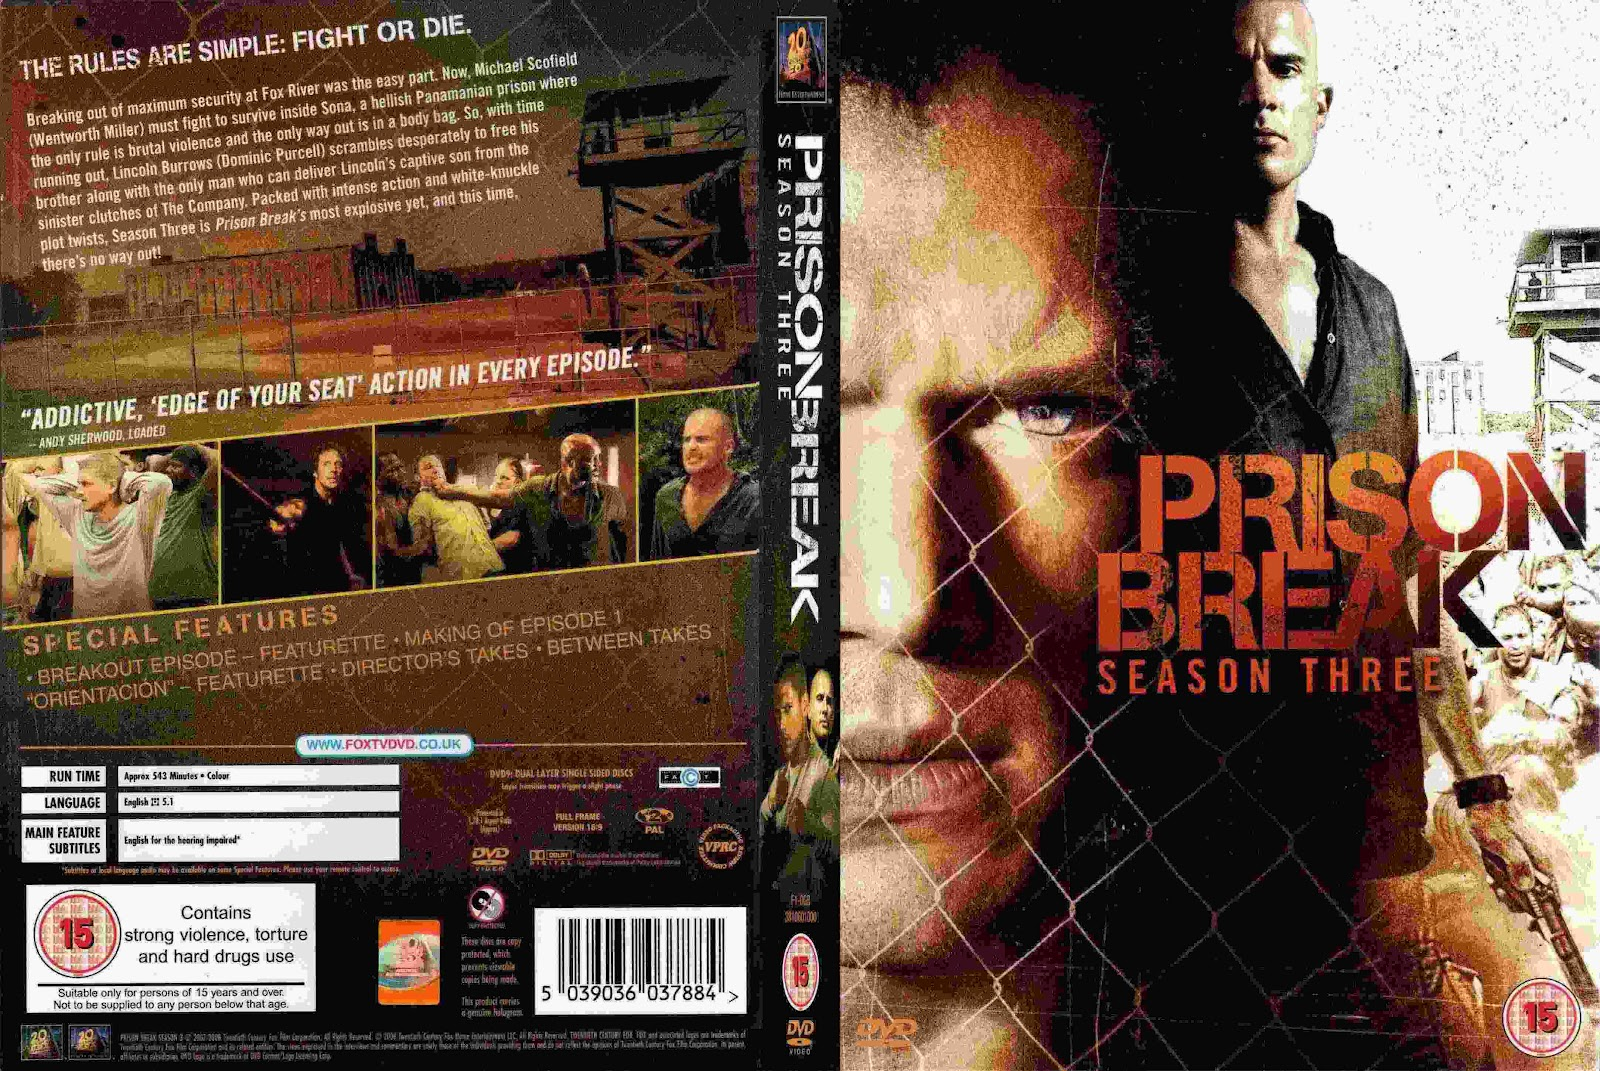 Prison break season 5 wallpapers free prison break season 5.